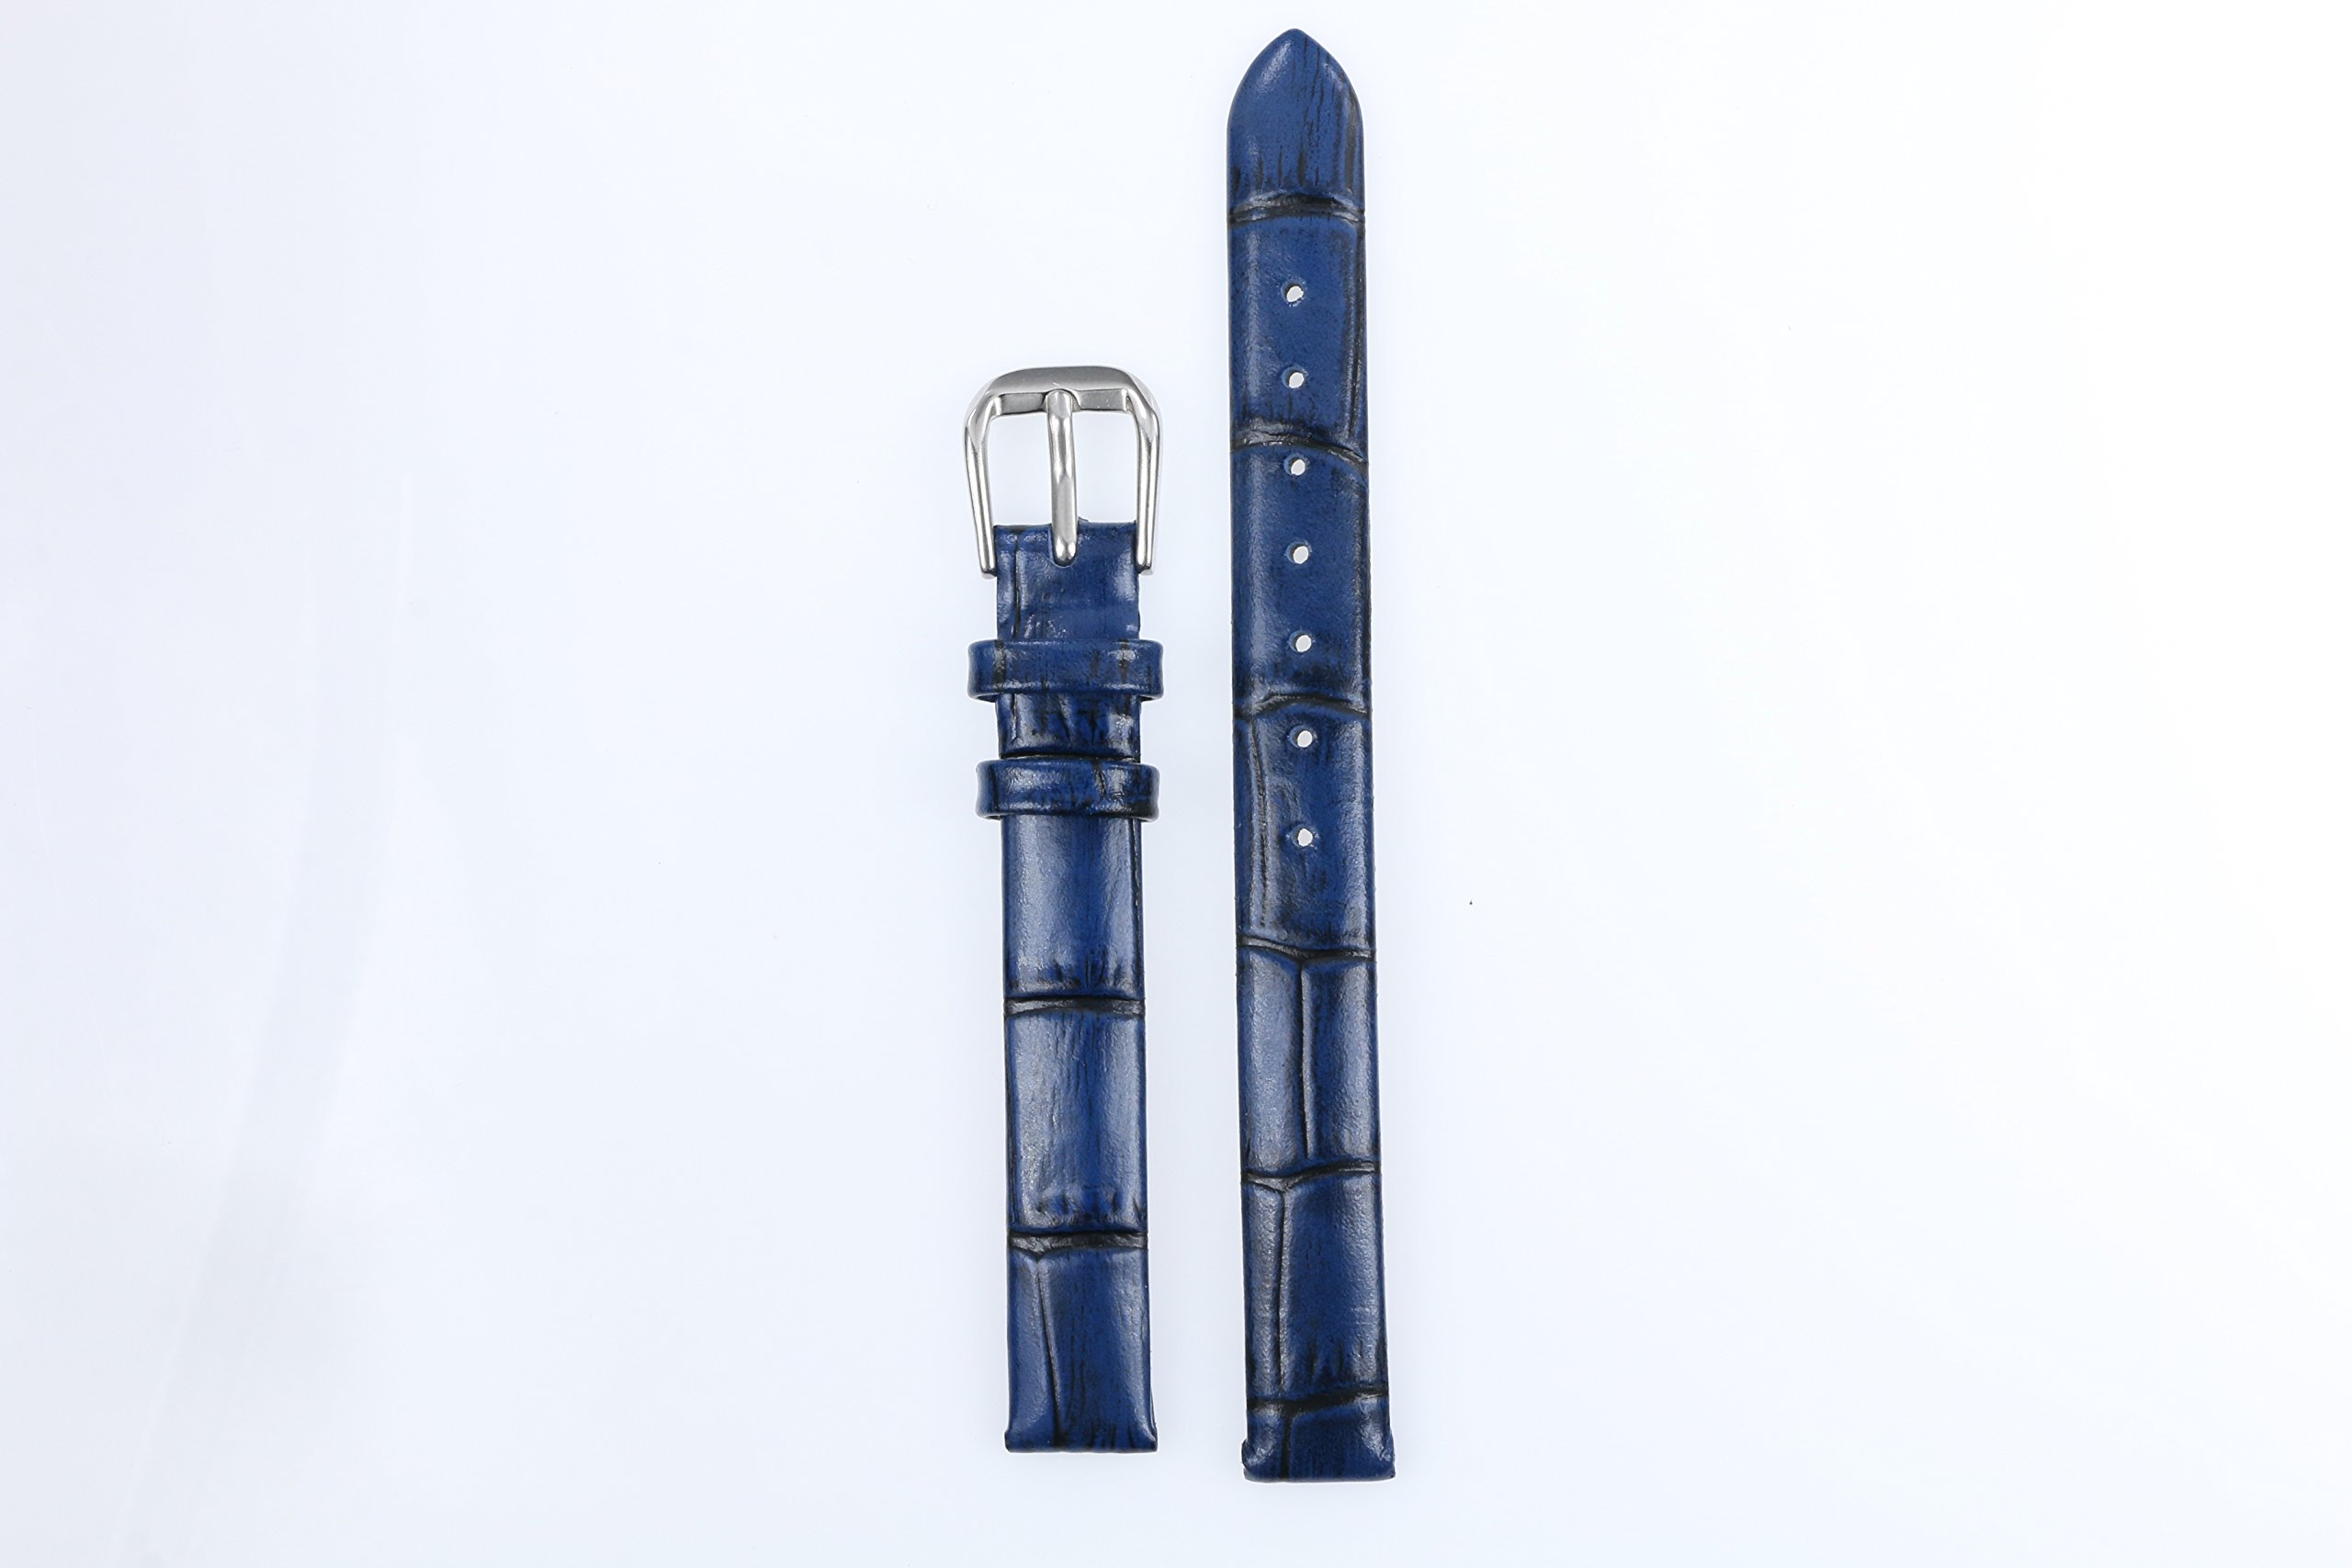 6mm Women's Superfine Luxury Blue Leather Watch Straps Mottled Small Sized Lighty Padded